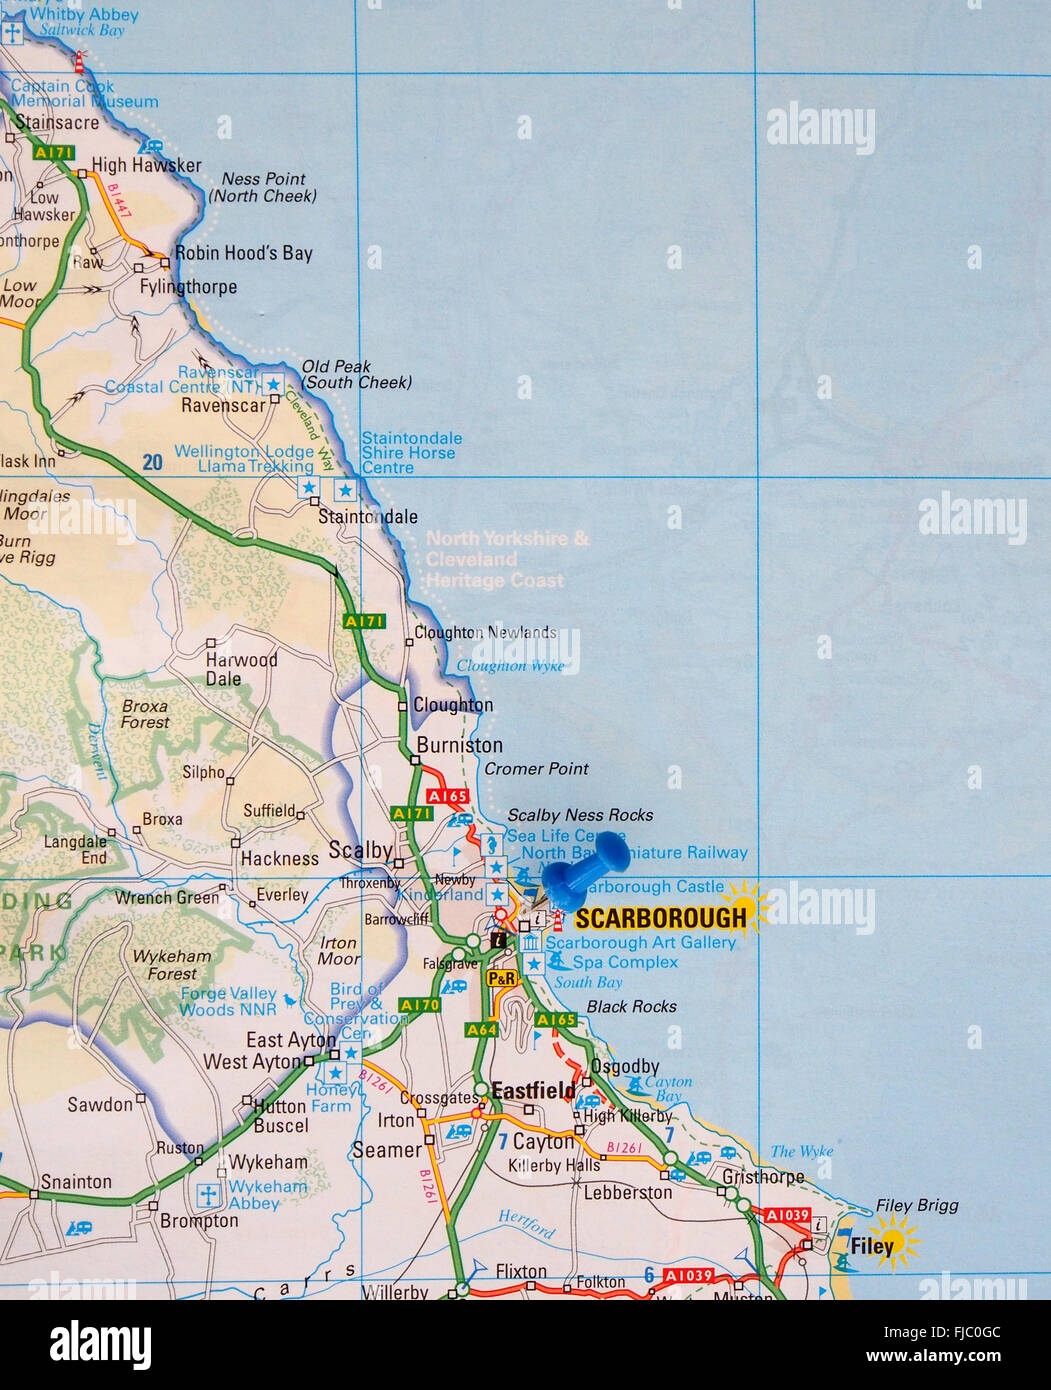 Map Of Uk East Coast.Road Map Of The East Coast Of England Showing Robin Hoods Bay And